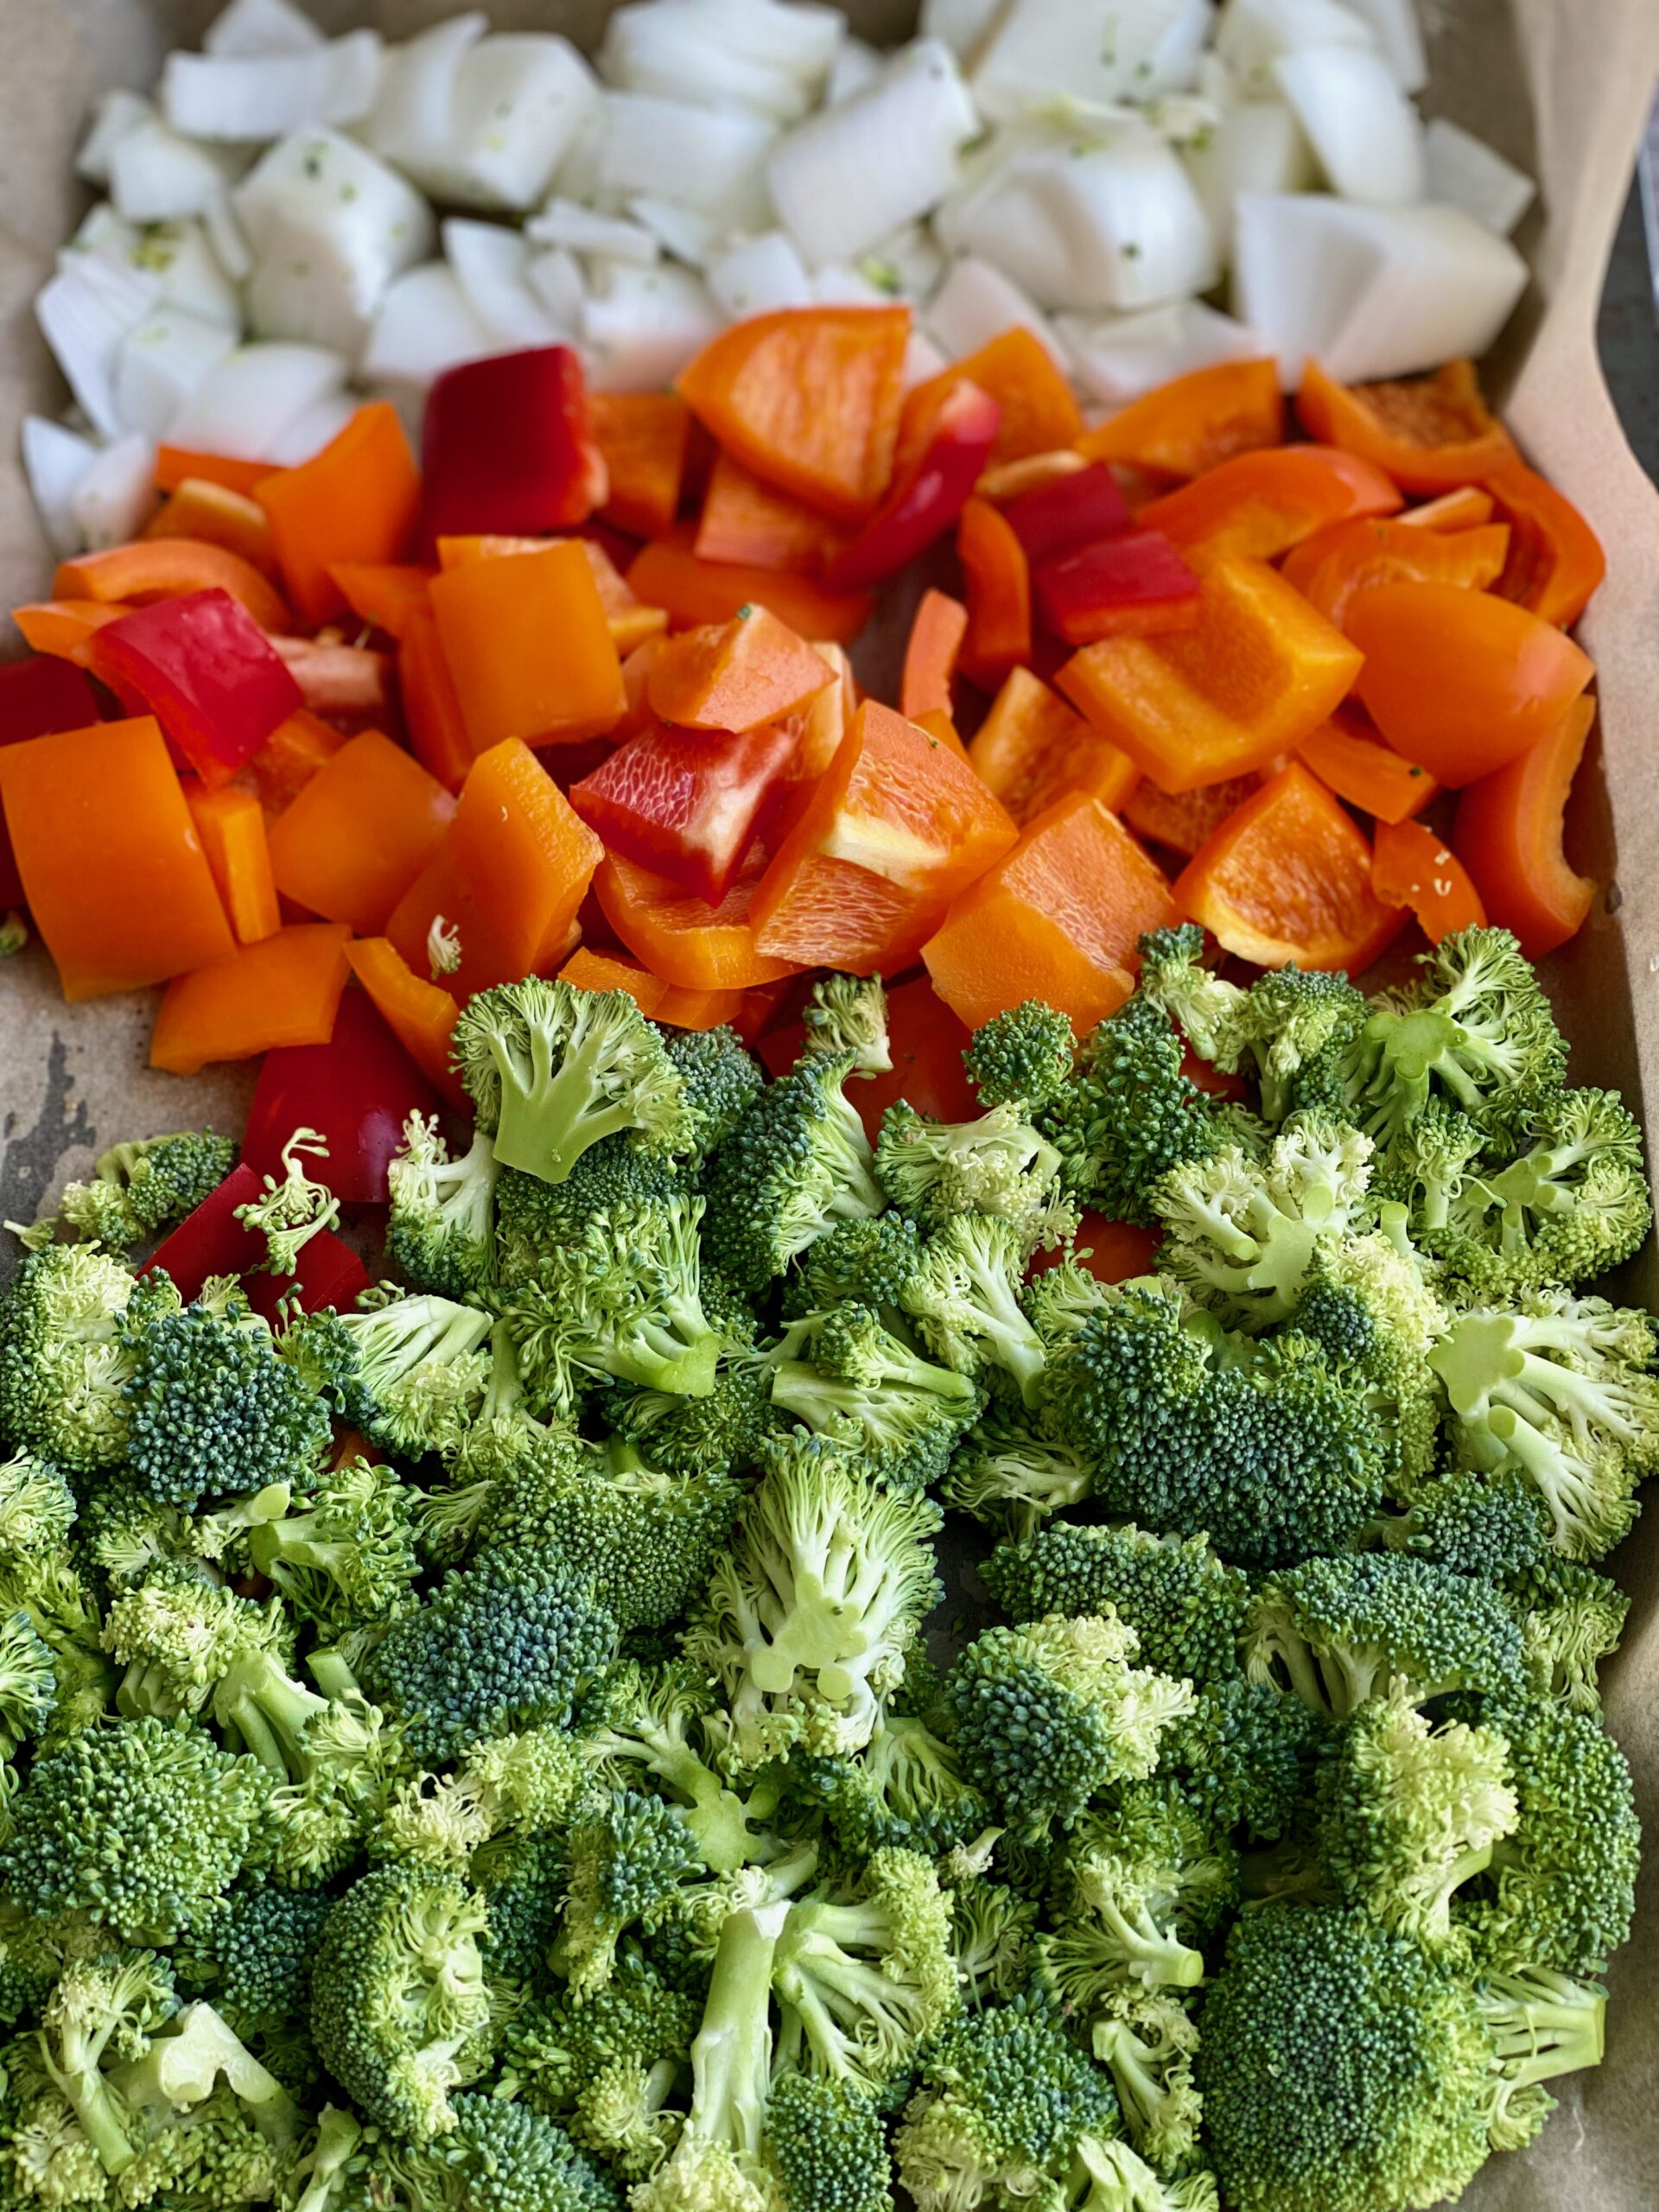 Image of a pan of broccoli, bell peppers and onions